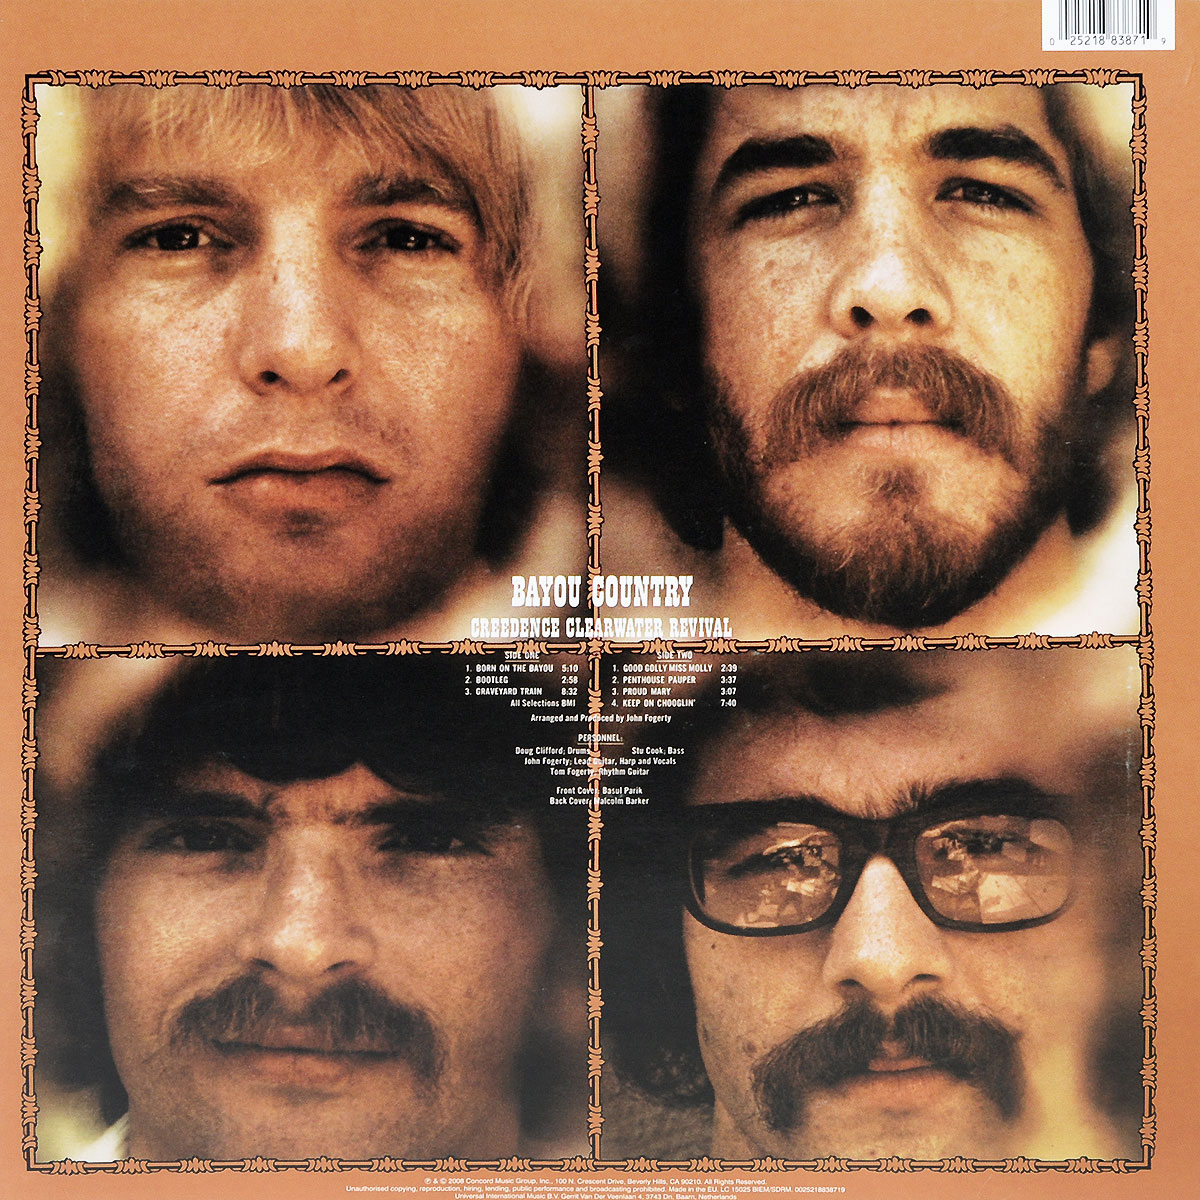 Creedence Clearwater Revival.  Bayou Country (LP) ООО